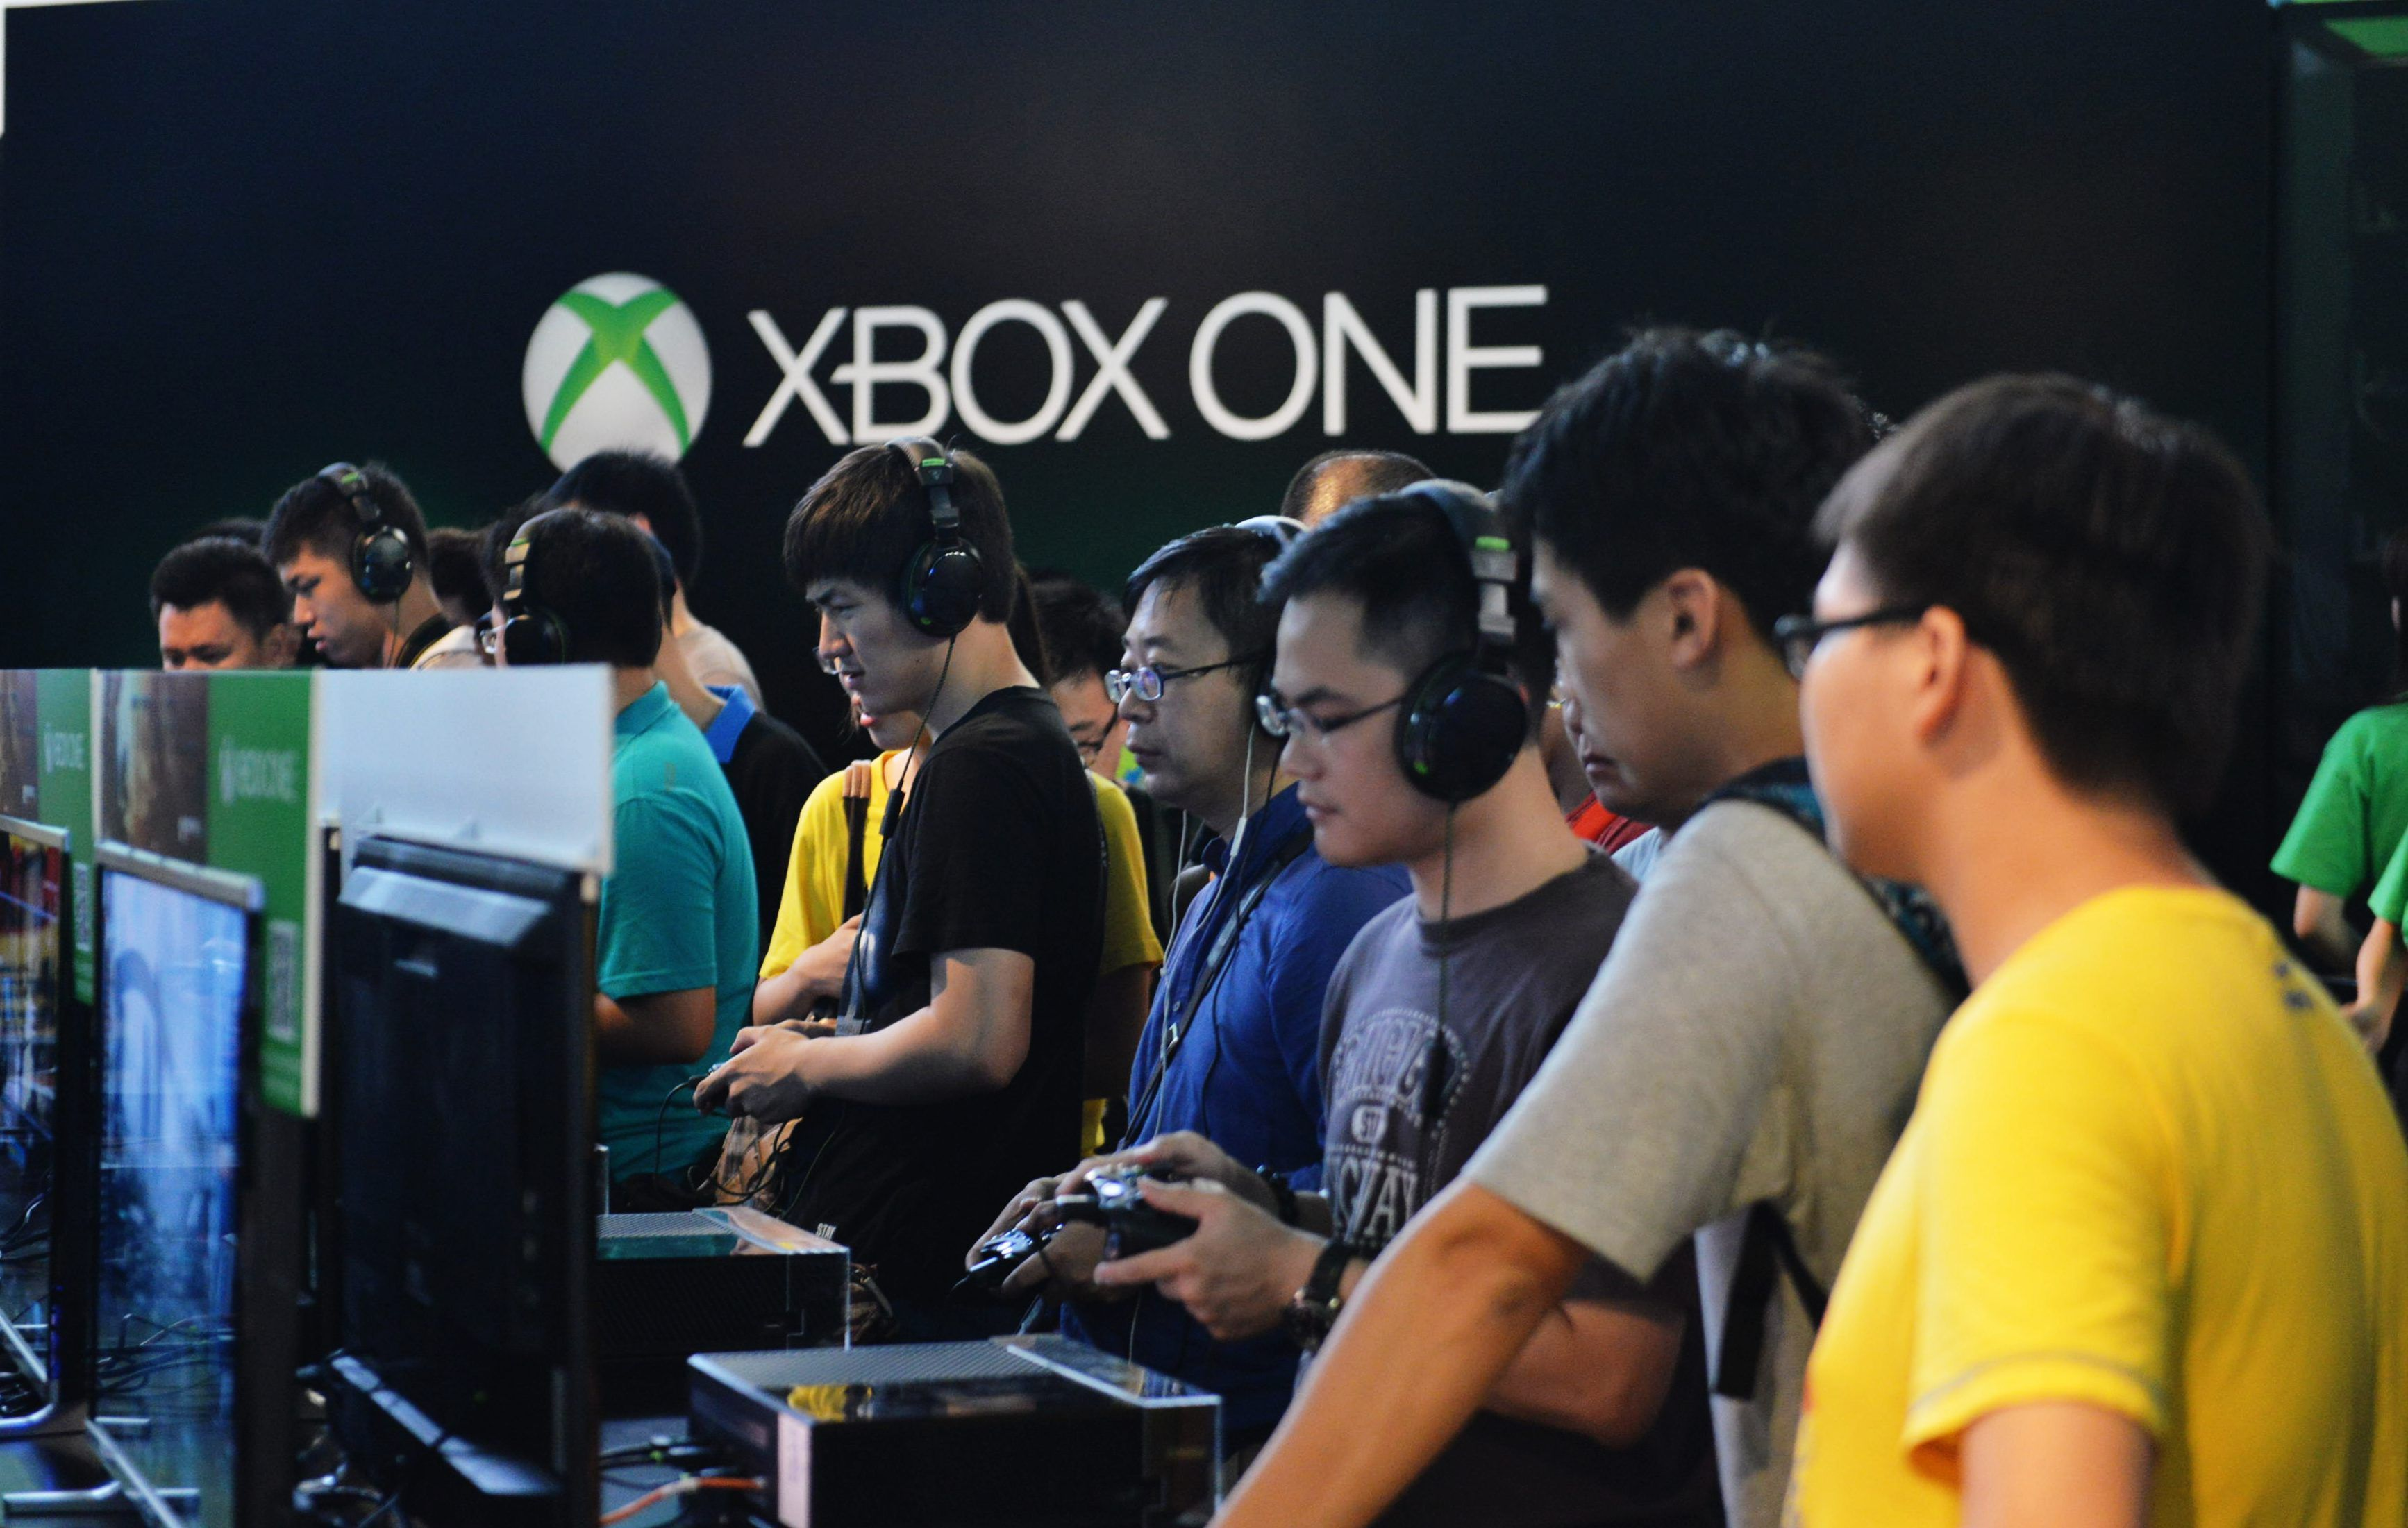 Visitors experience the Xbox One game during the China Joy event on July 31, 2014 in Shanghai, China.